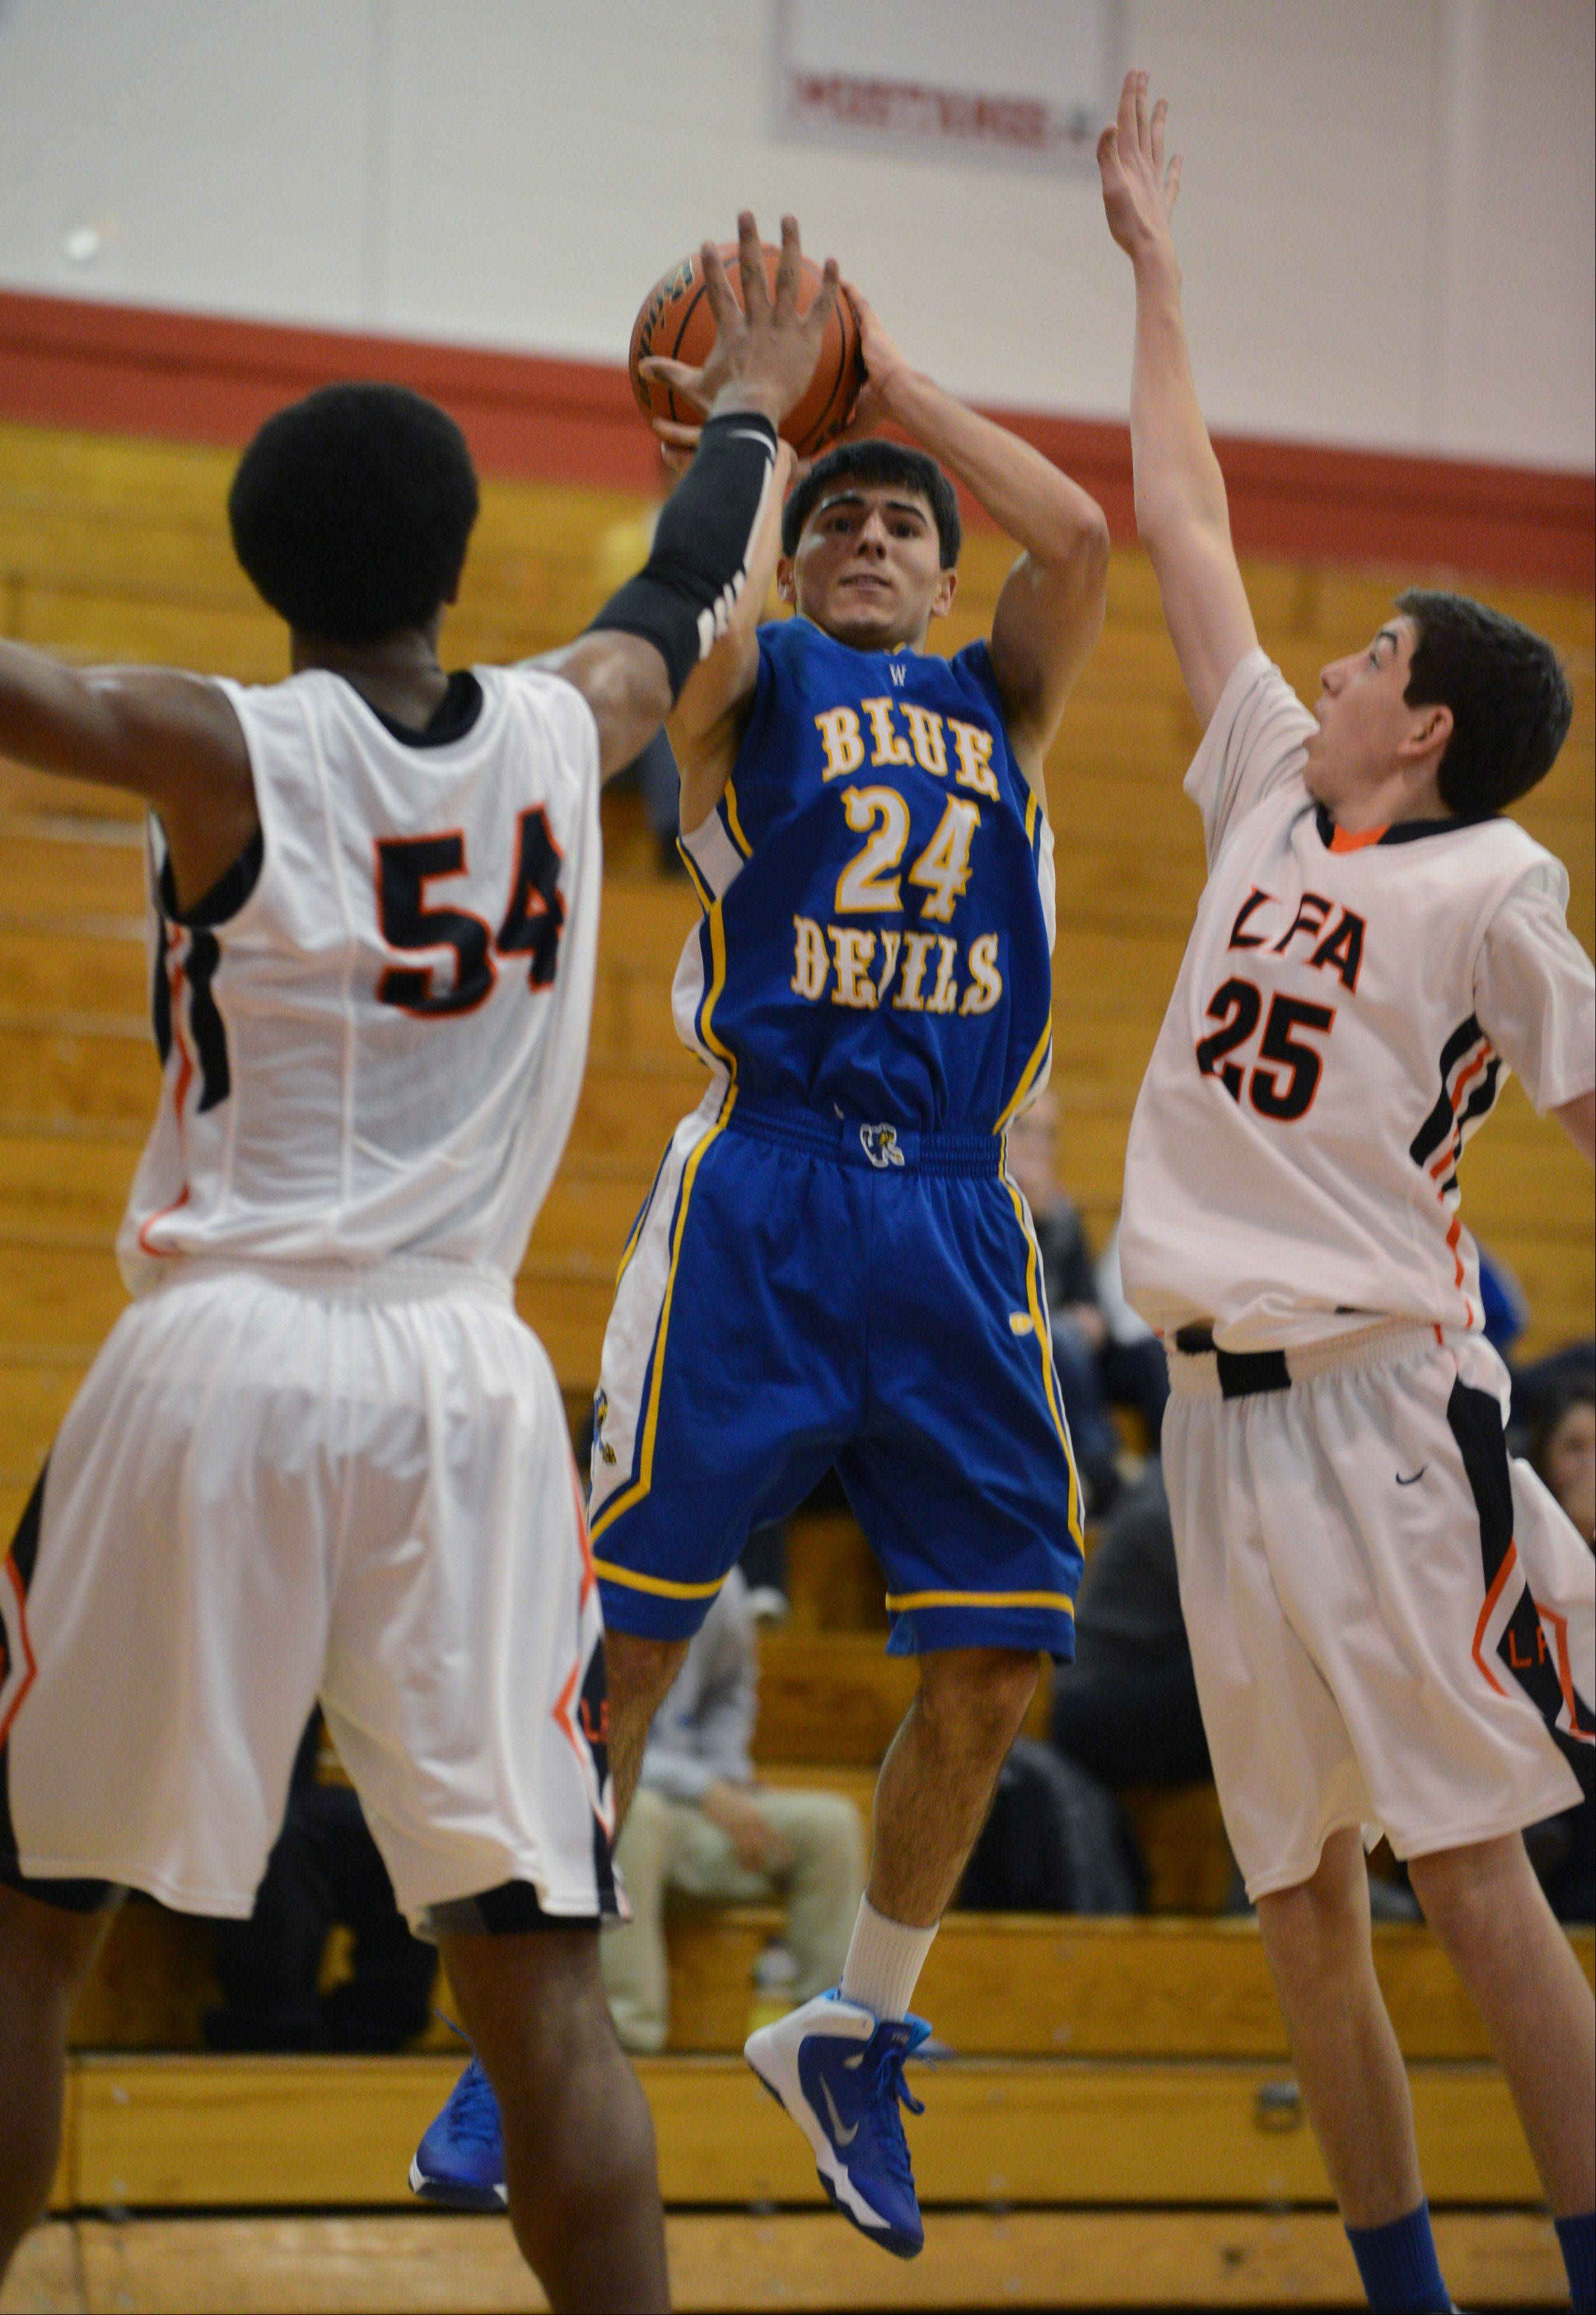 Warren's Dominic Cuevas (24) takes a shot over Lake Forest Academy's Diago Quinn (54) and Ryan Clamage on Wednesday at Mundelein.